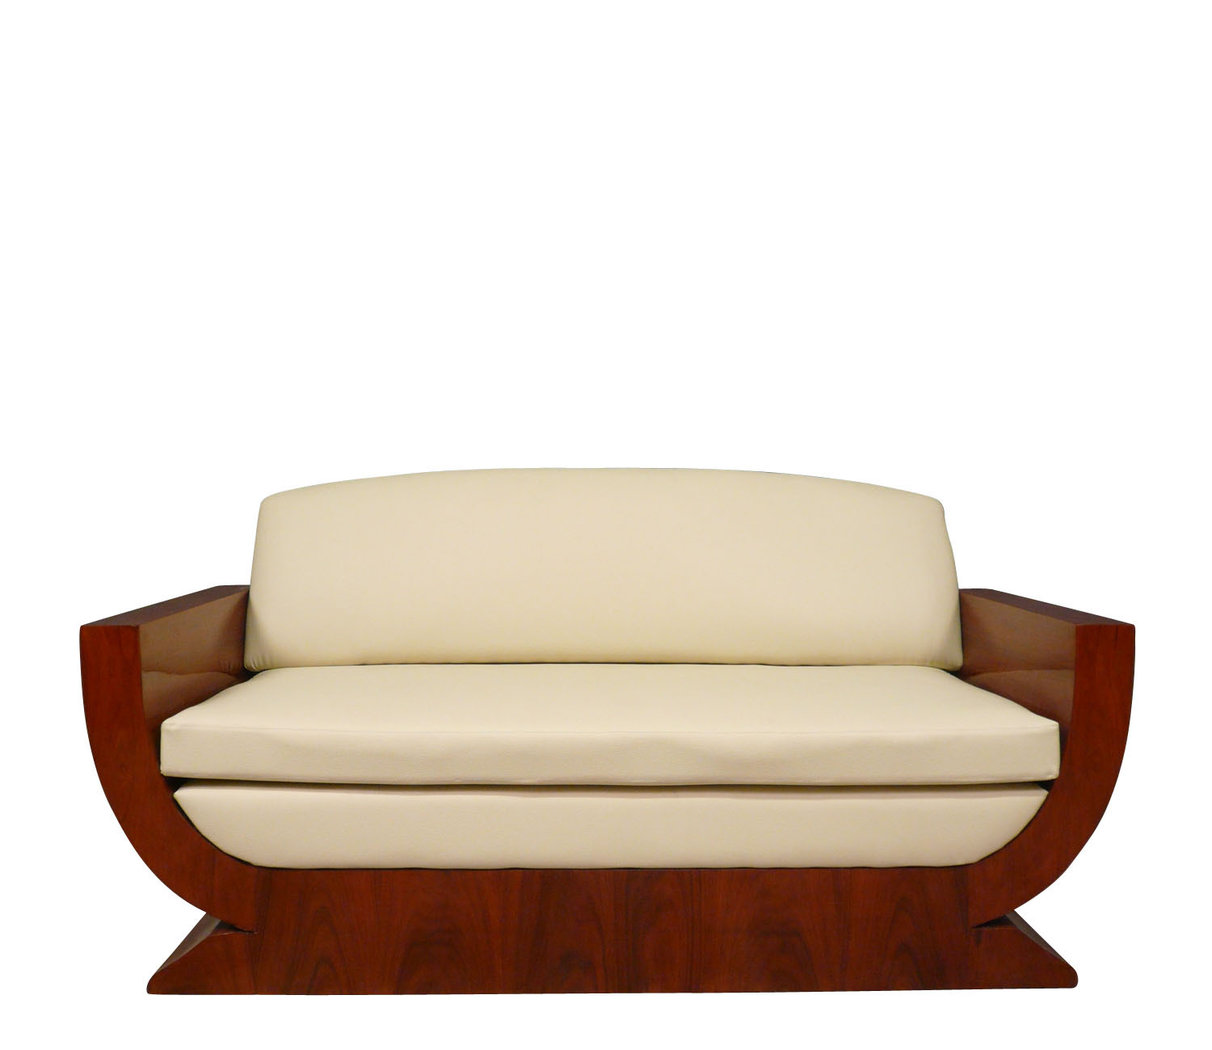 Deco Canape Art Deco Sofa Art Deco Furniture